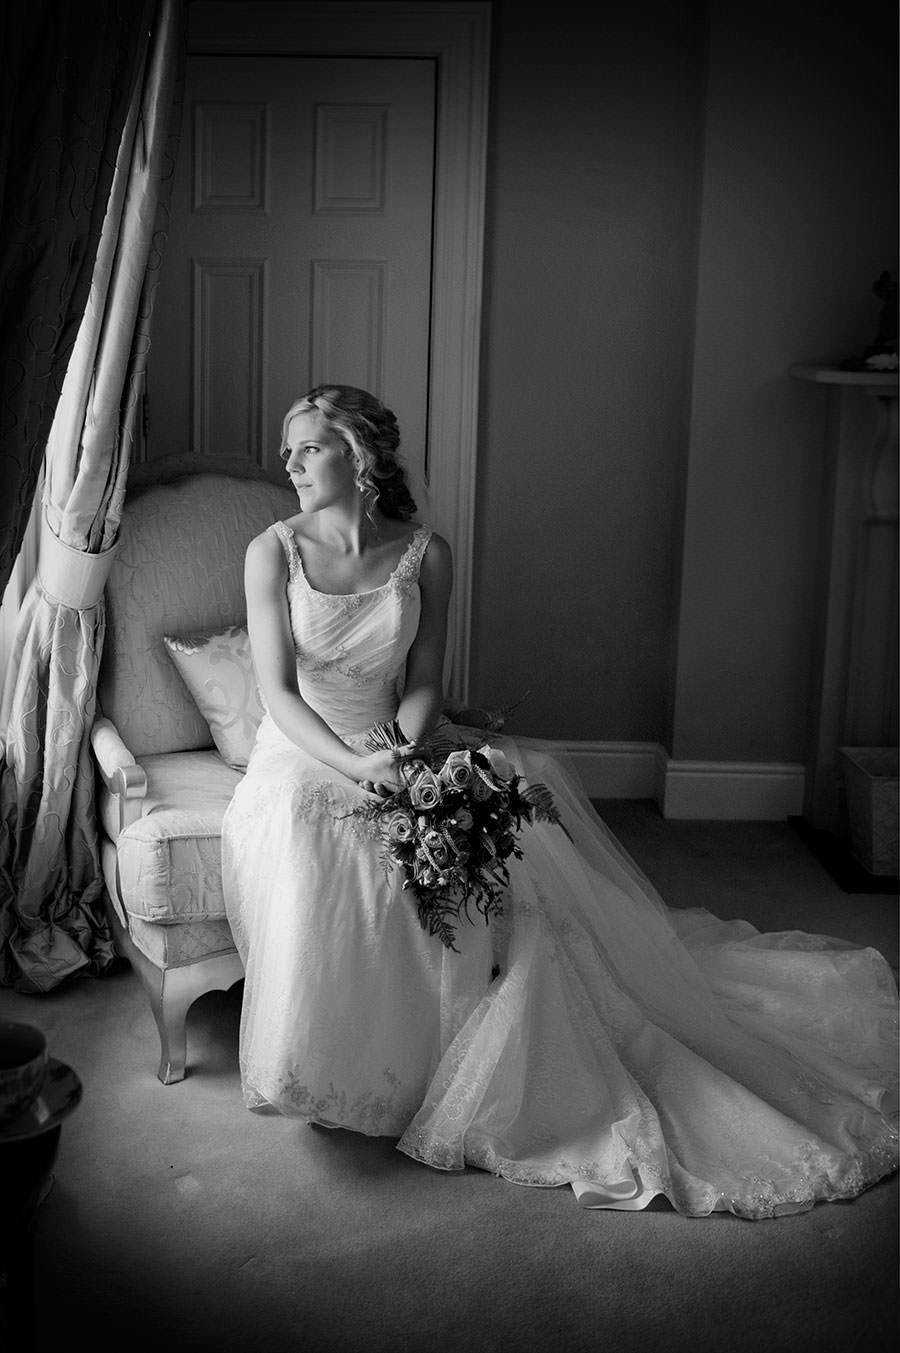 Rosie & Jam's wedding preview - Ballymagarvey Village, Co Meath 18